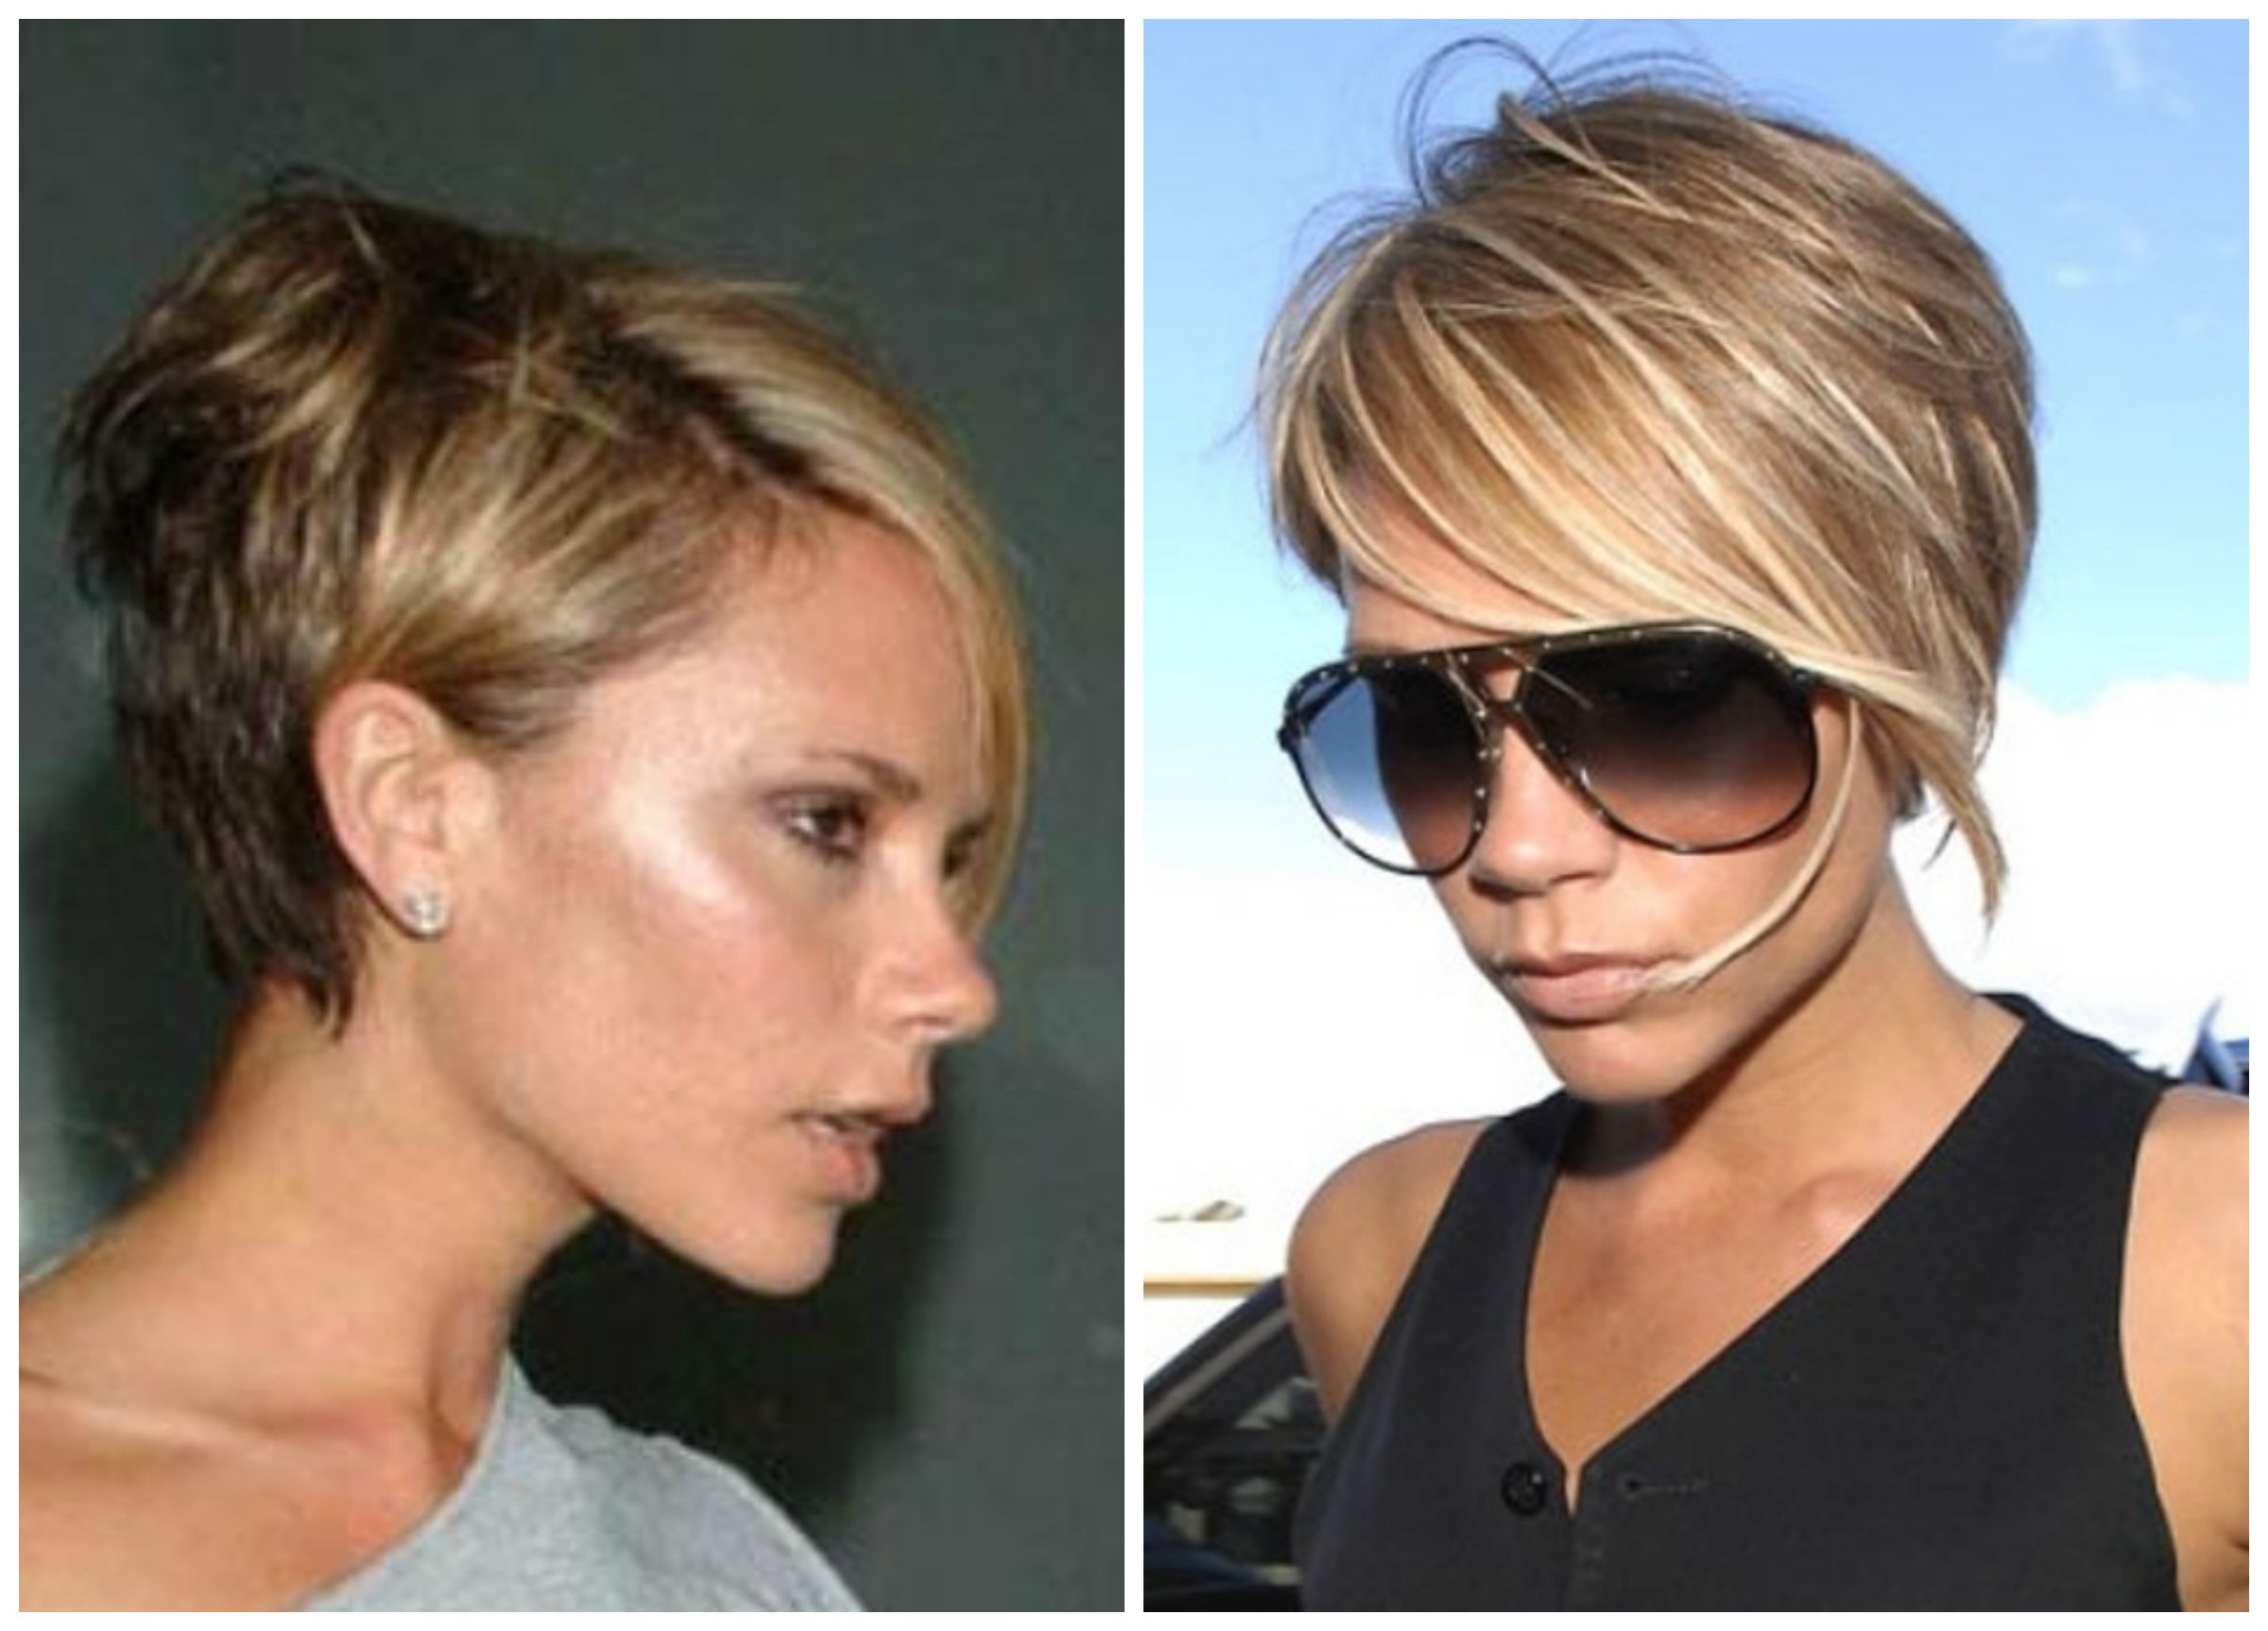 Victoria Beckham Short Hair Gallery | Victoria Beckham Short Throughout Posh Spice Short Hairstyles (View 23 of 25)